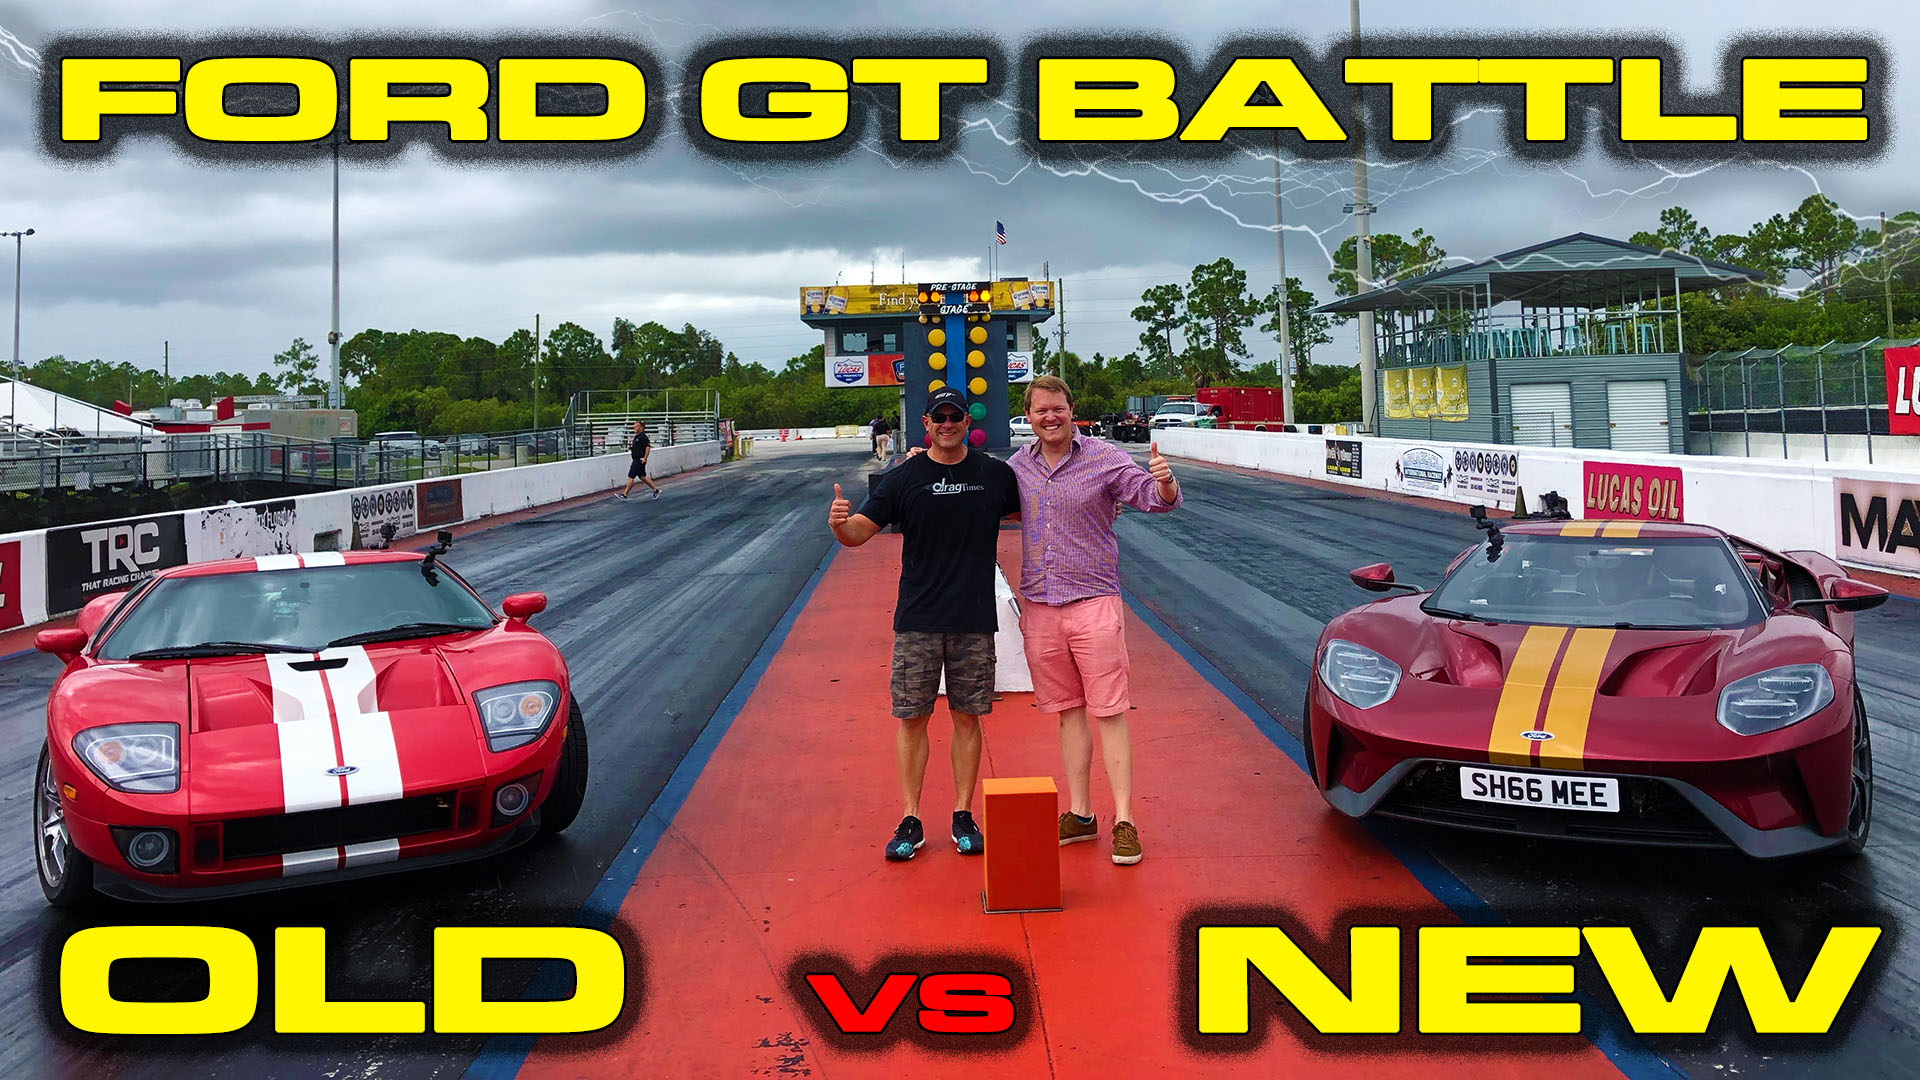 New vs old Ford GT Racing